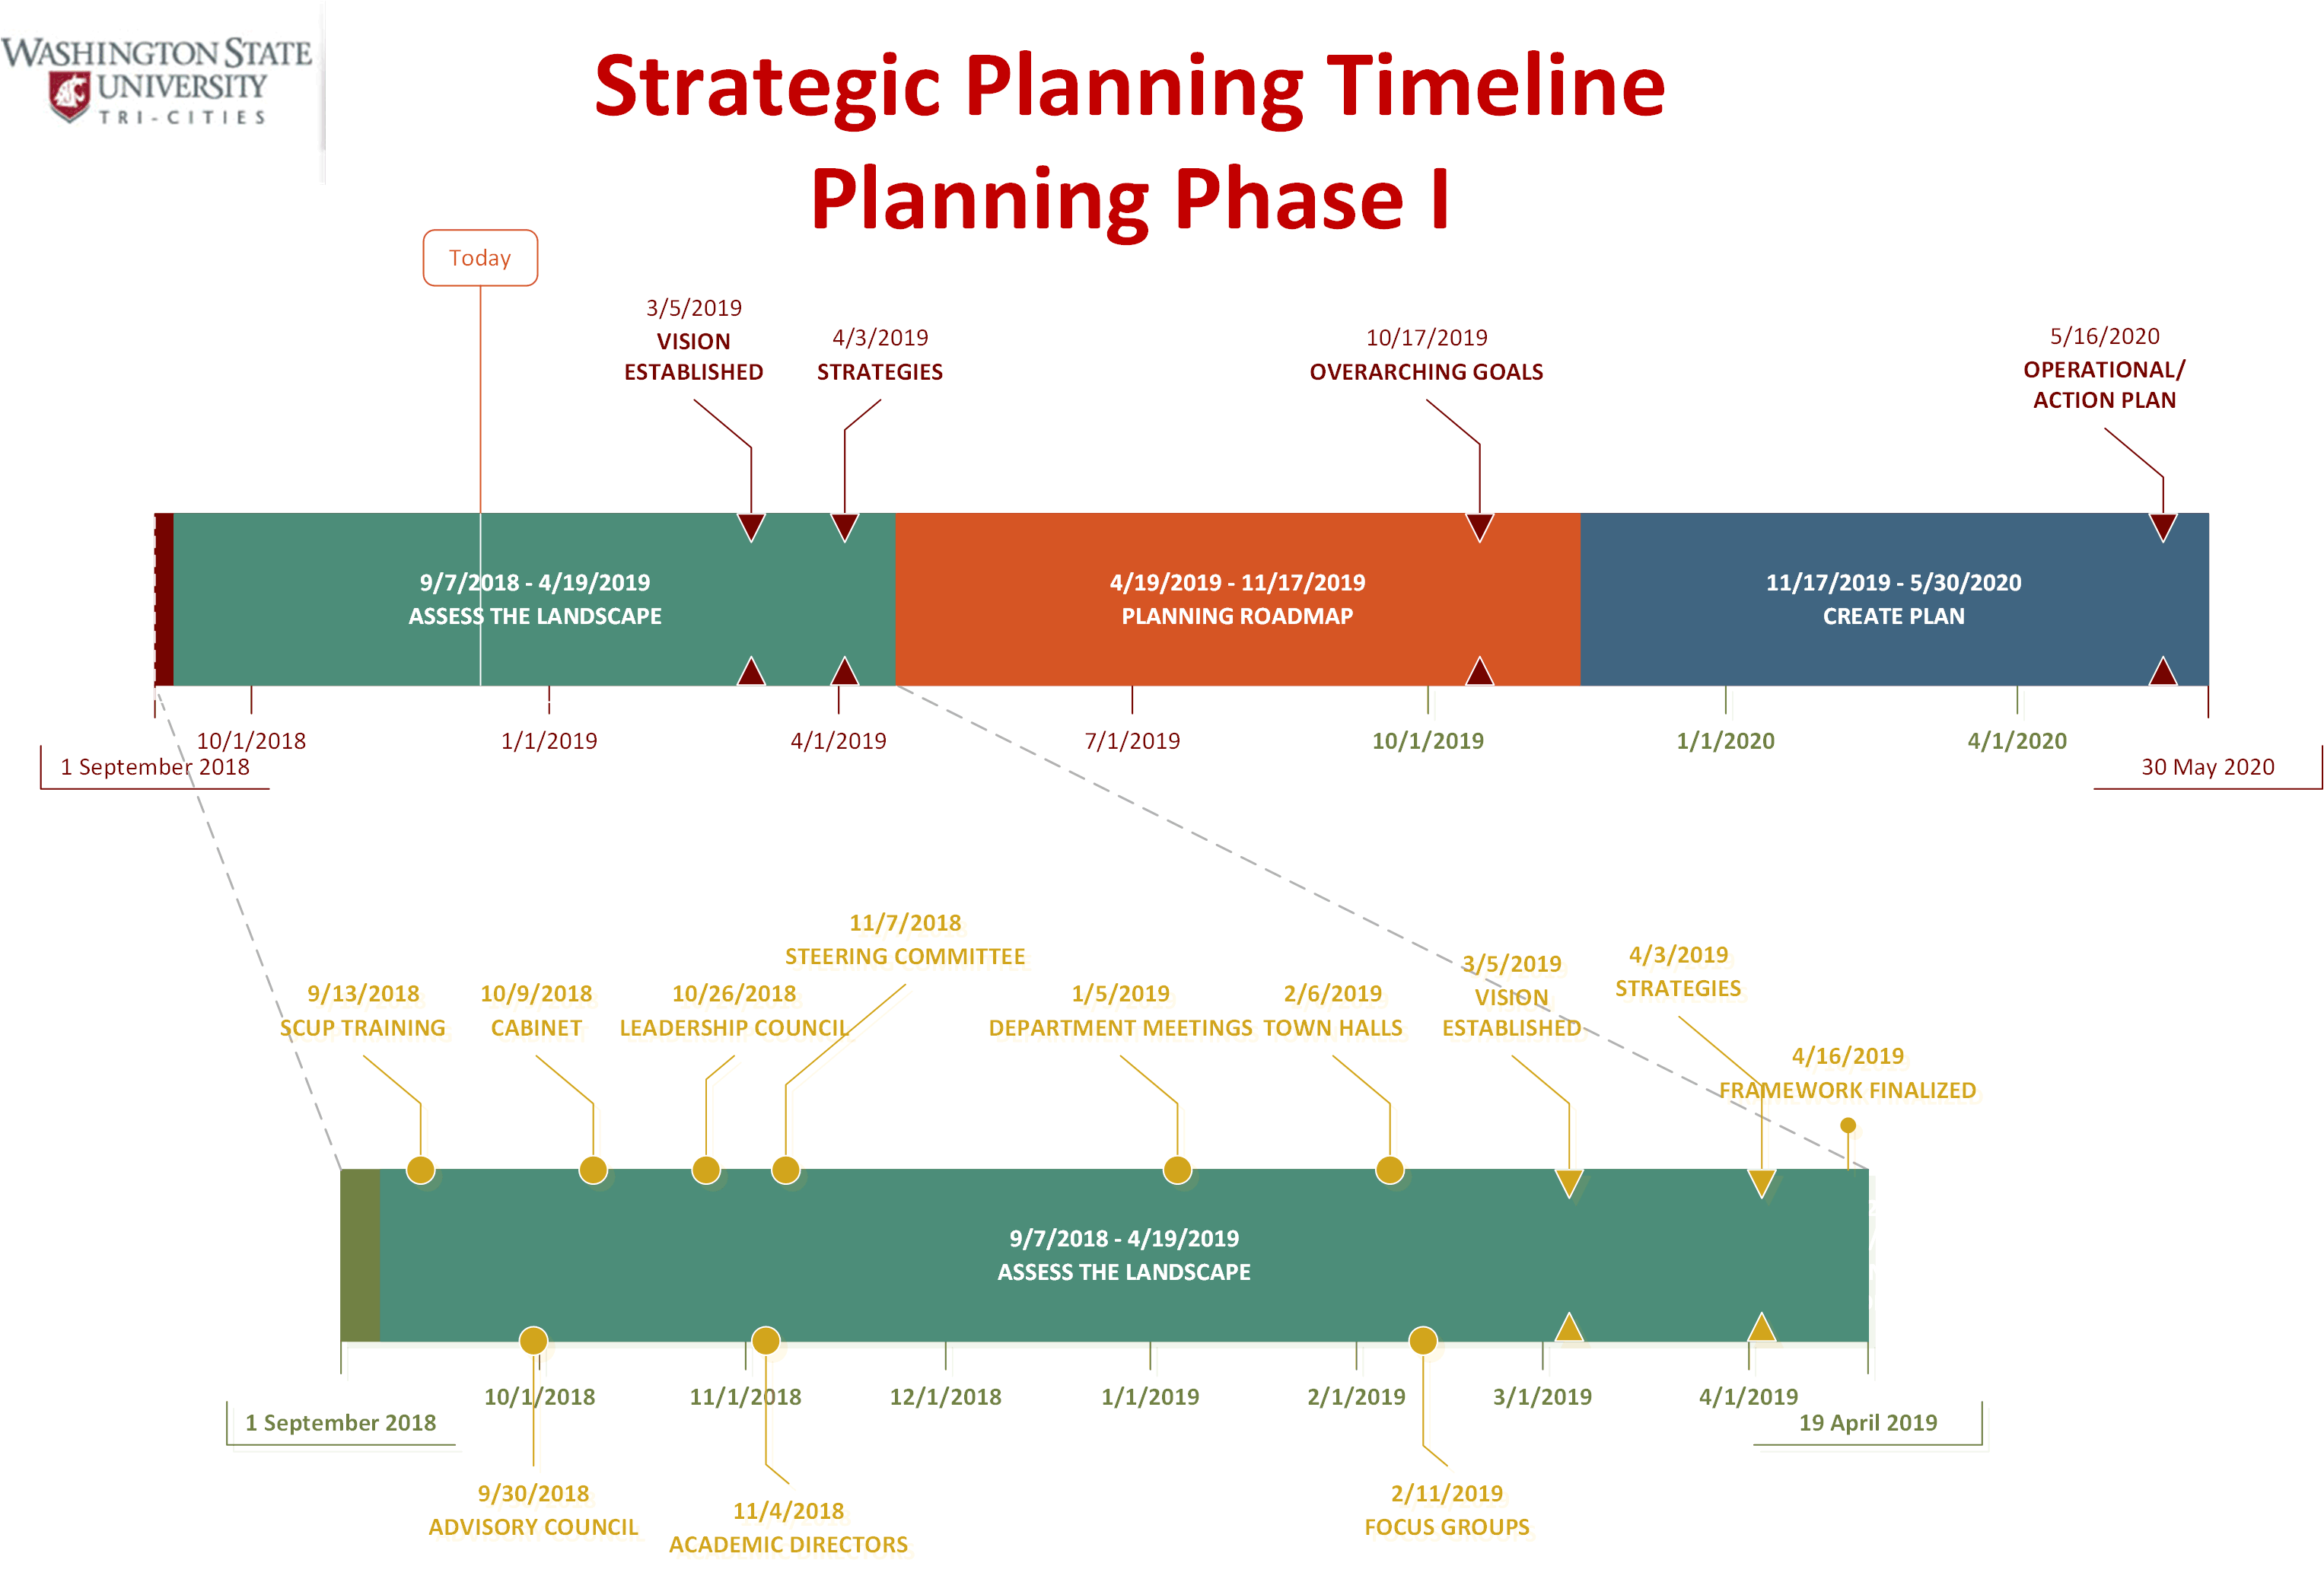 Strategic Planning Timeline phase 1